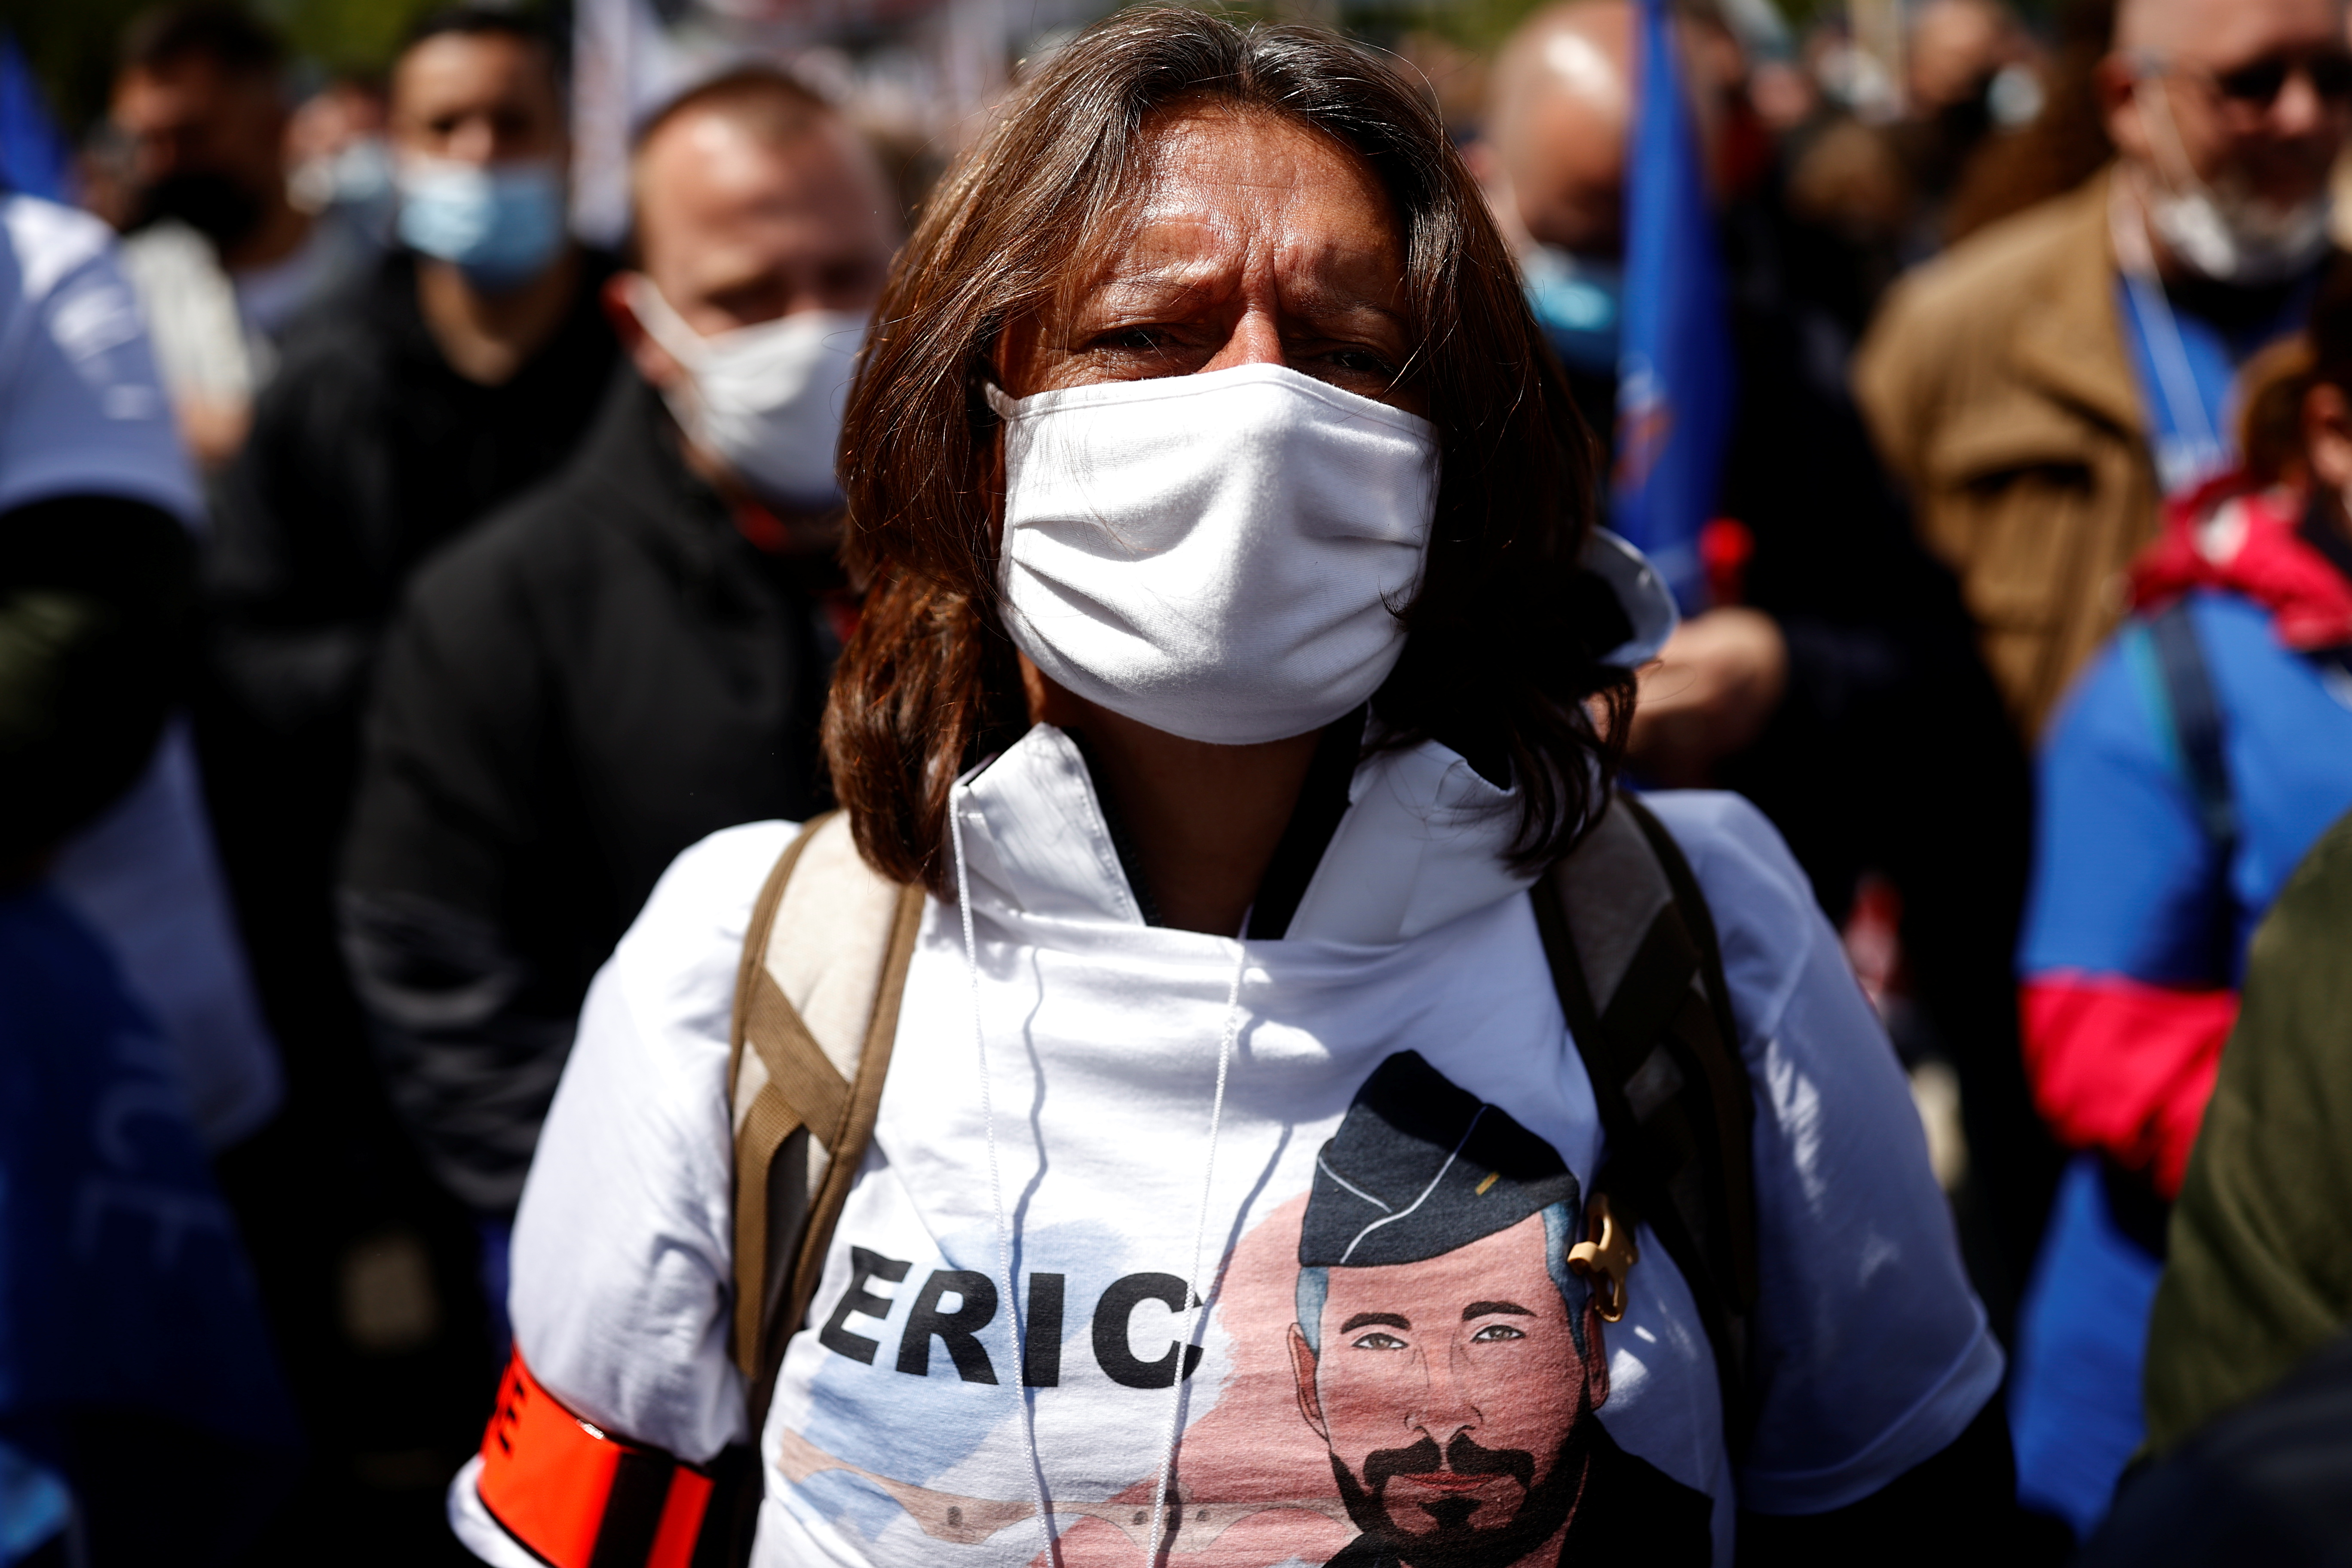 A police officer wears a t-shirt in tribute of late police officer Eric Masson, who was killed on May 5 during an anti-drug operation, as French police officers from all over France gather in front of the National Assembly in Paris to protest against violence against themselves and require a greater severity in the penal response to their aggressors, France, May 19, 2021. REUTERS/Christian Hartmann